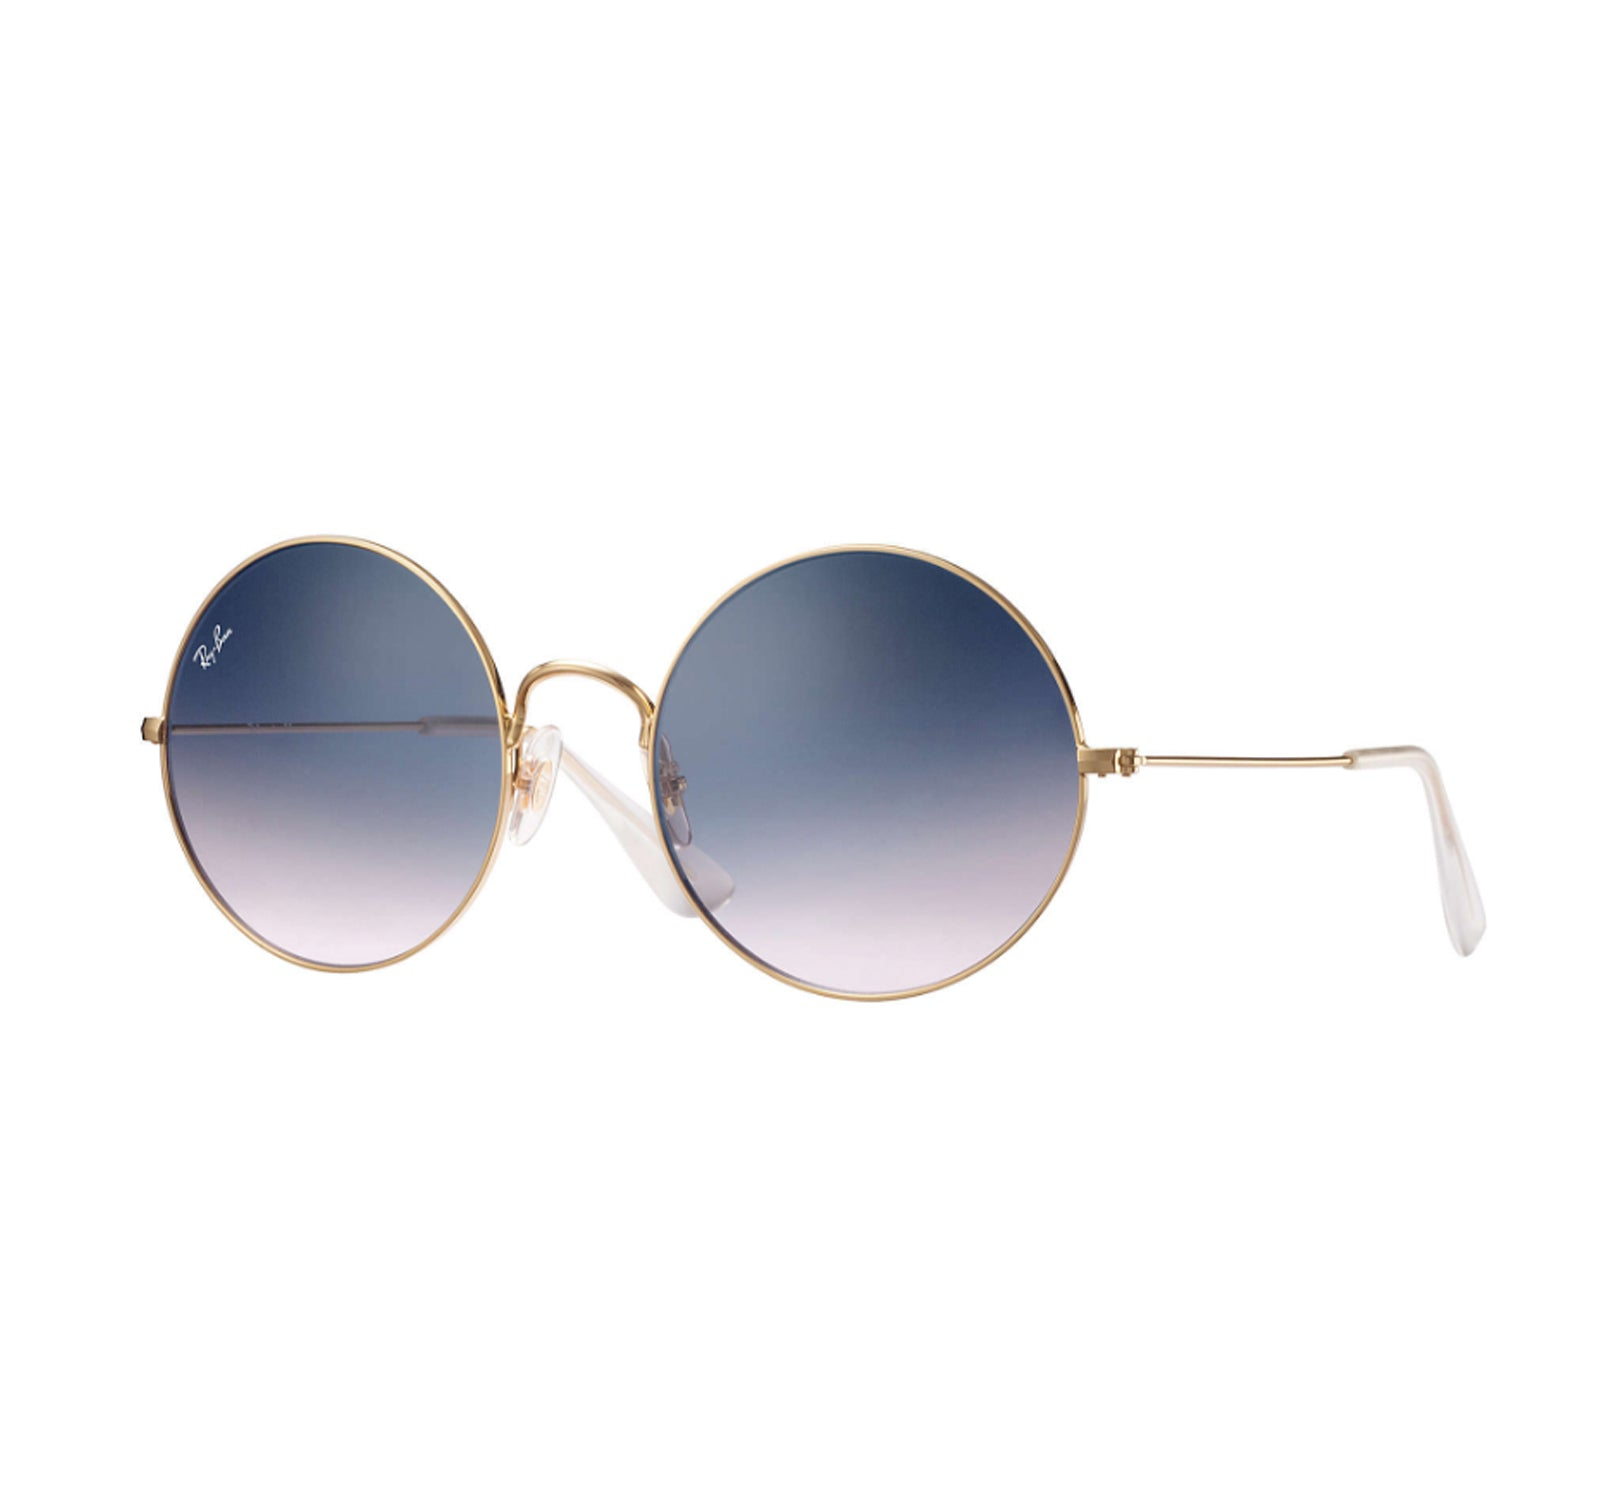 Ray-Ban Ja-Jo Women's Sunglasses - Gold/Blue Gradient